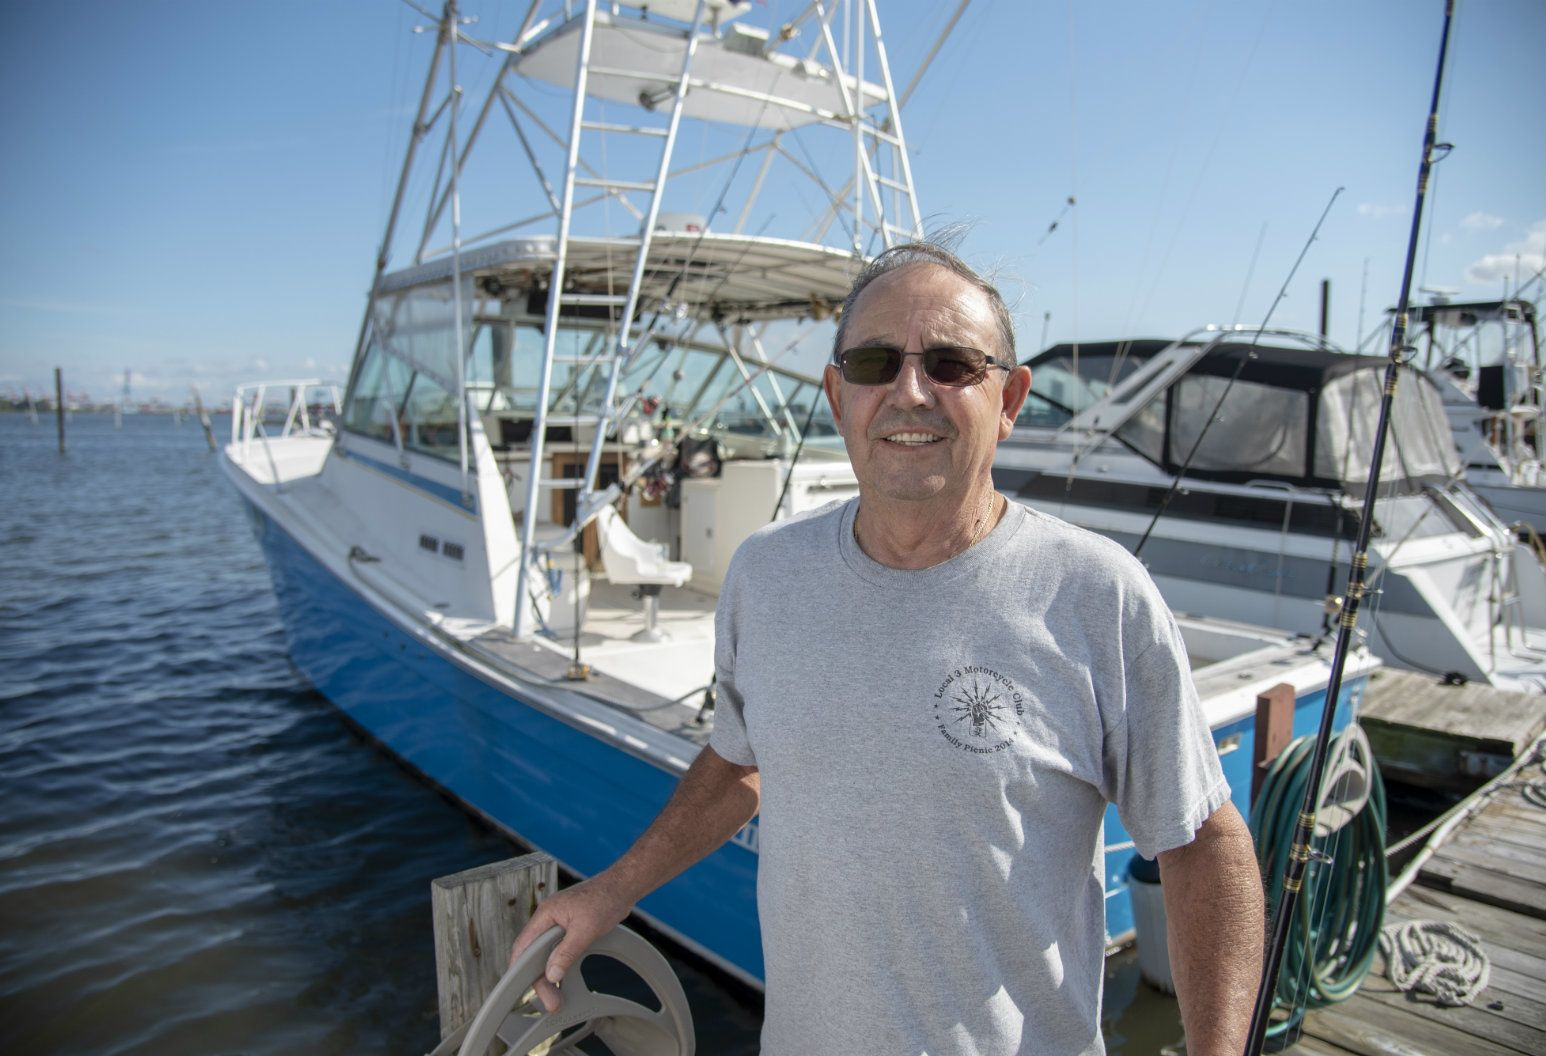 Jose Freire stands on a wooden dock in front of his boat, the Estrella del Mar. His LINQ cardiac recorder has allowed him to receive treatment for his heart arrhythmia and return to his beloved hobby of fishing.